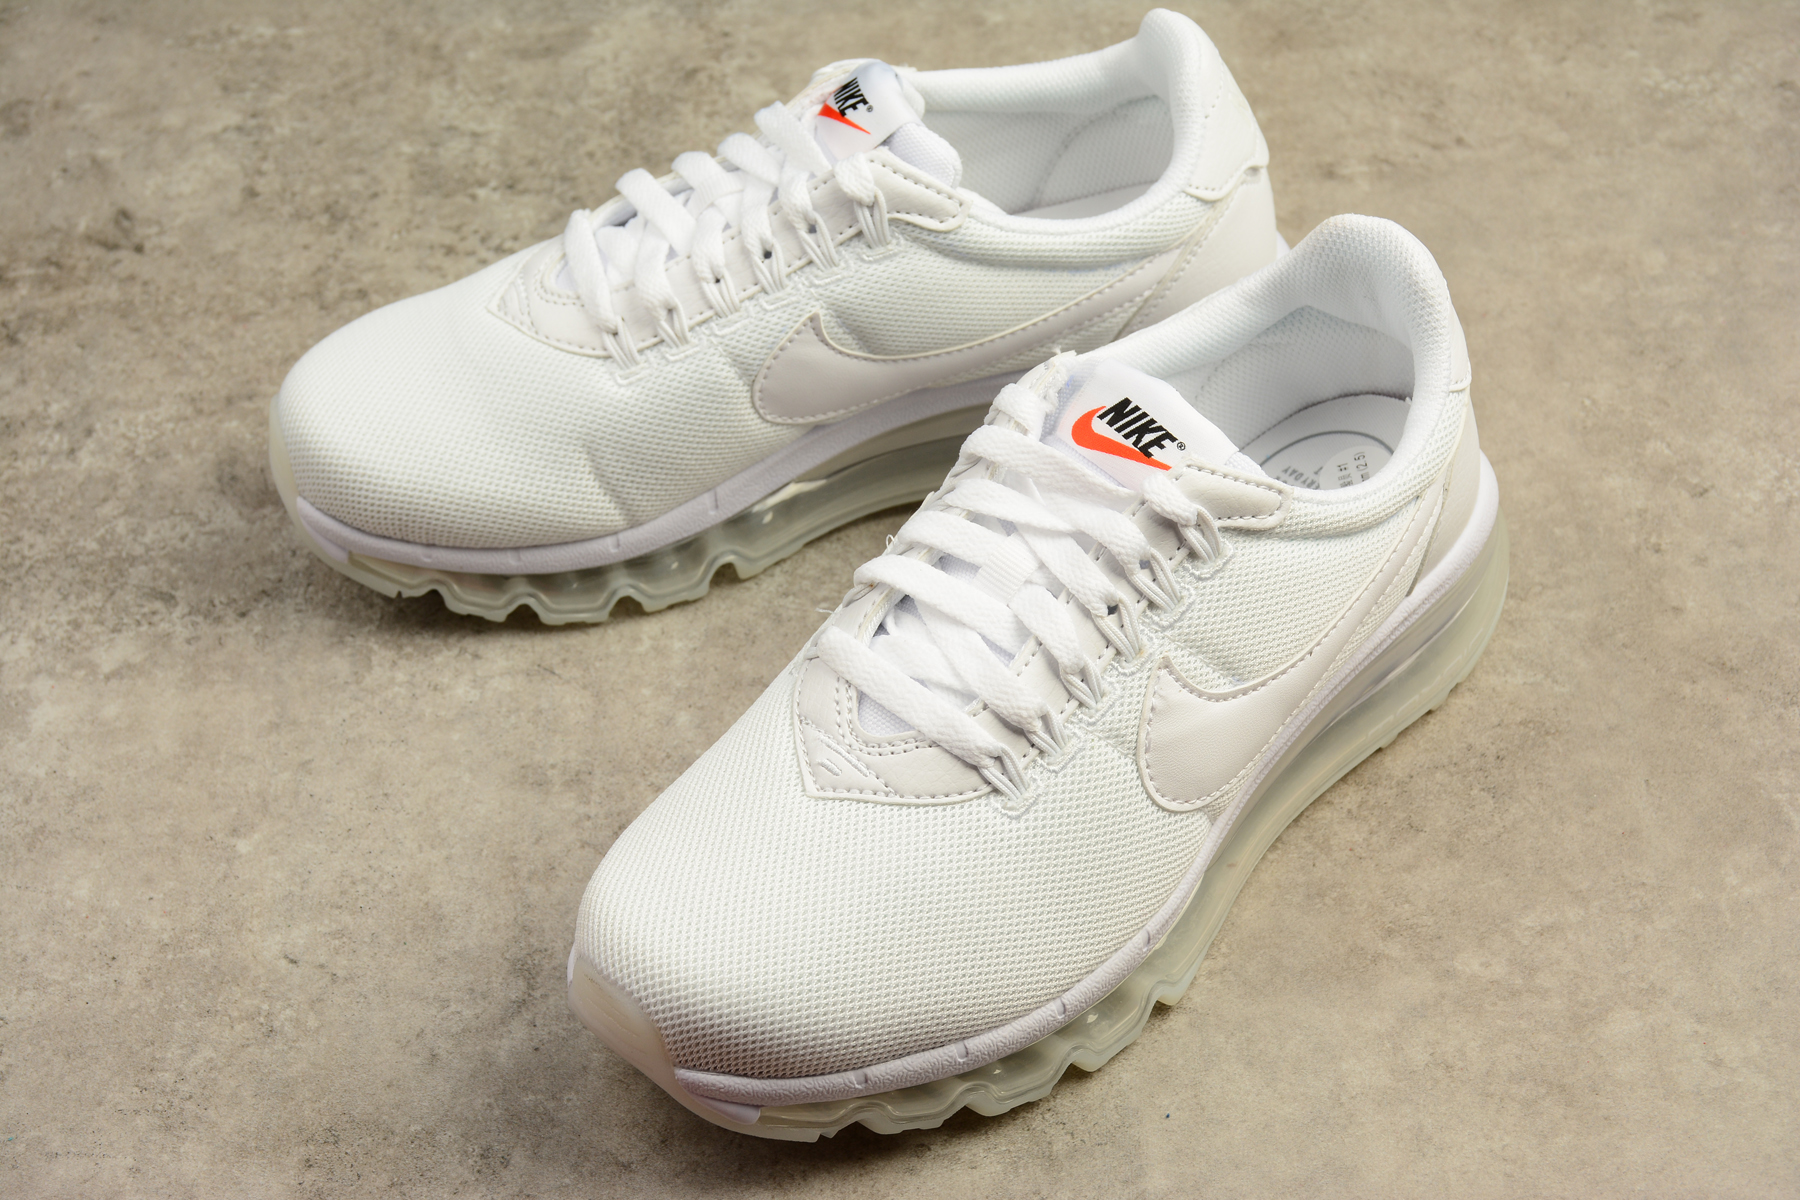 Women Nike Air Max LD Zero All White Shoes